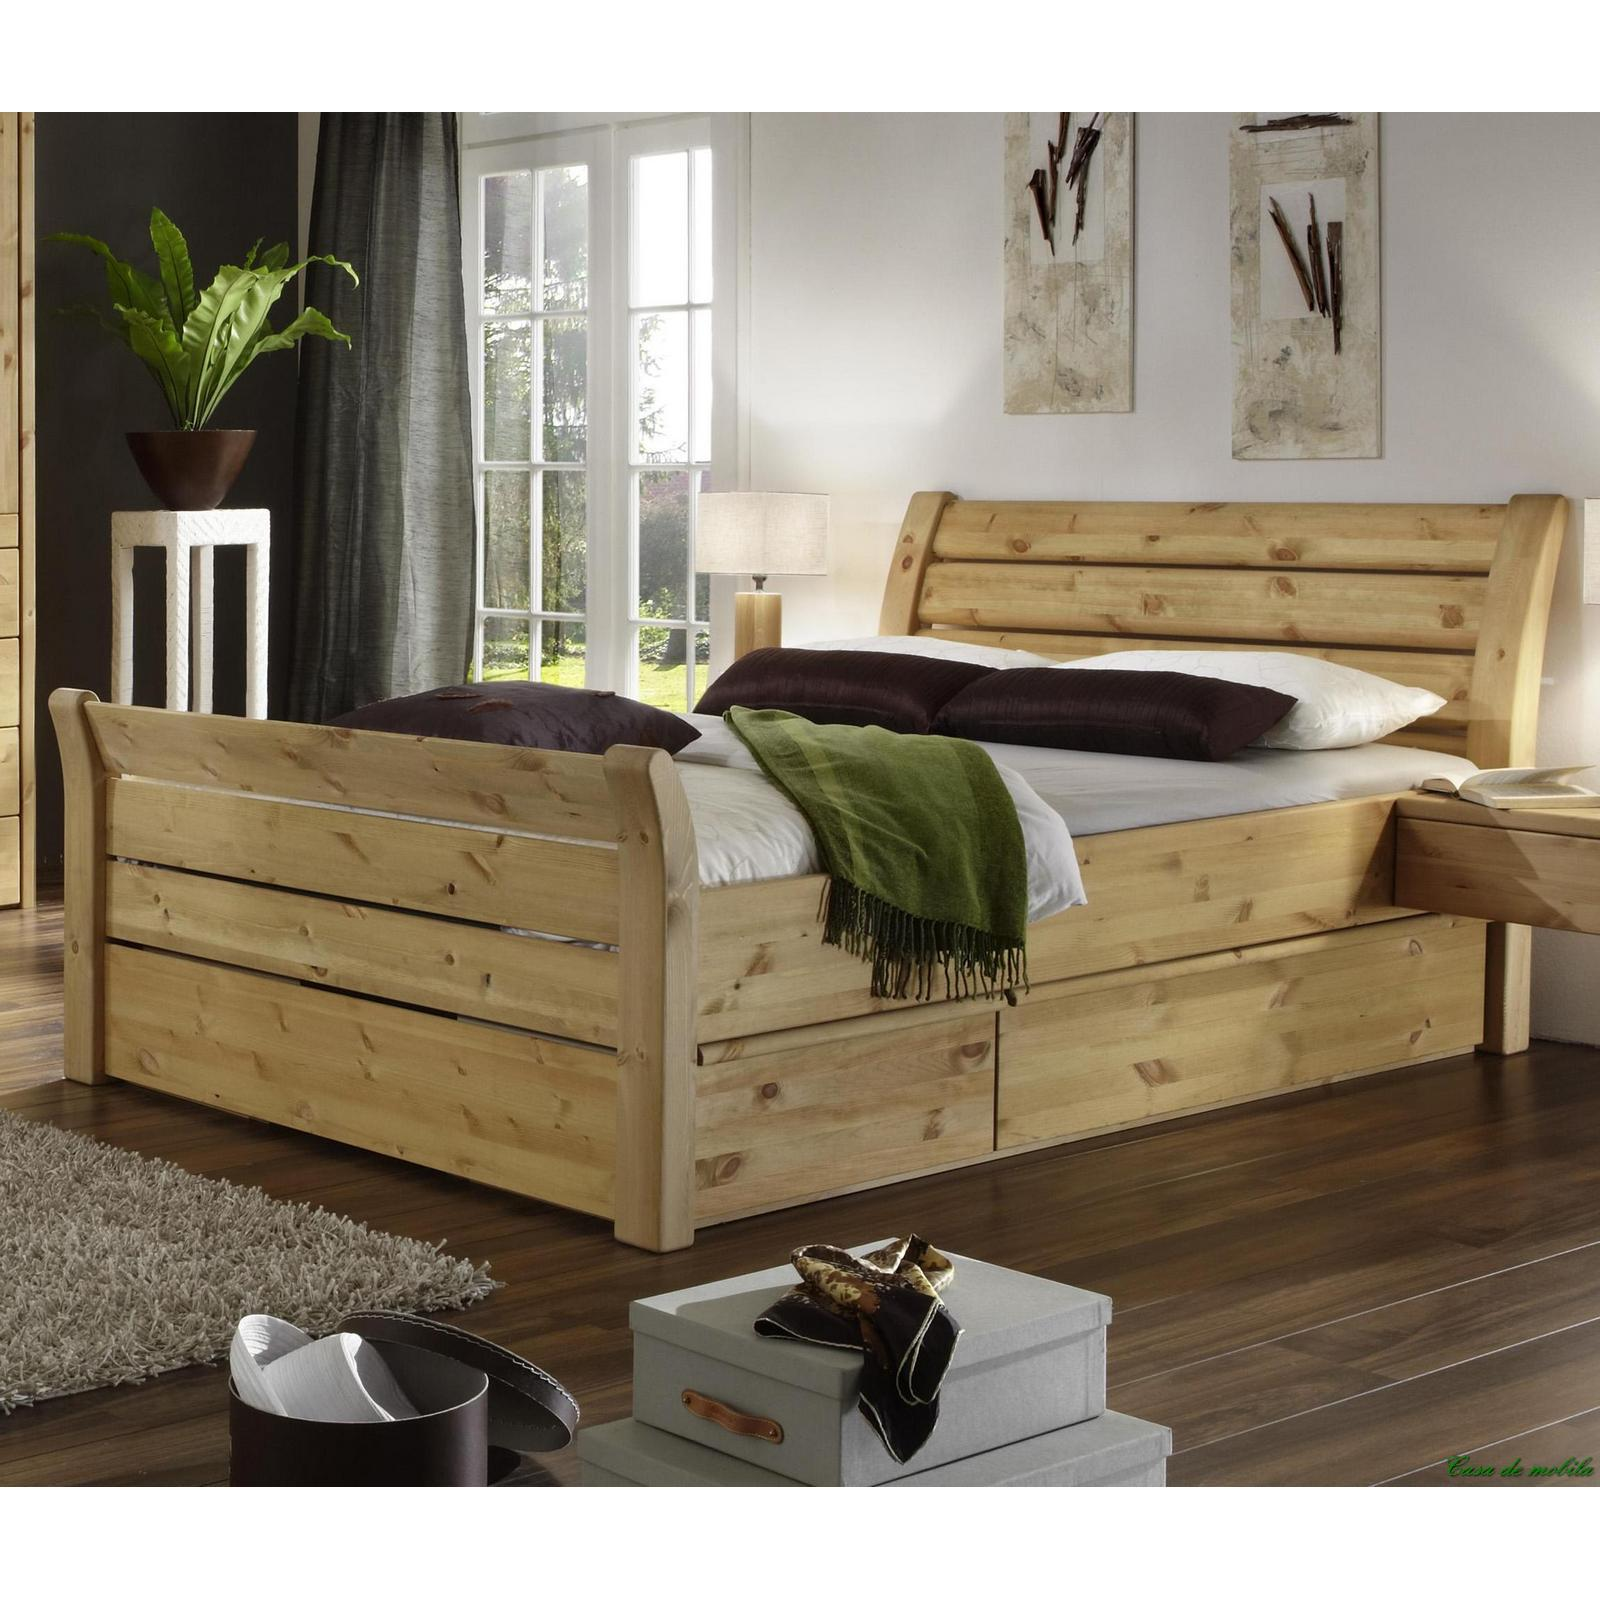 vollholz doppelbett landhausstil kiefer massiv lackiert 180 x 200 cm. Black Bedroom Furniture Sets. Home Design Ideas